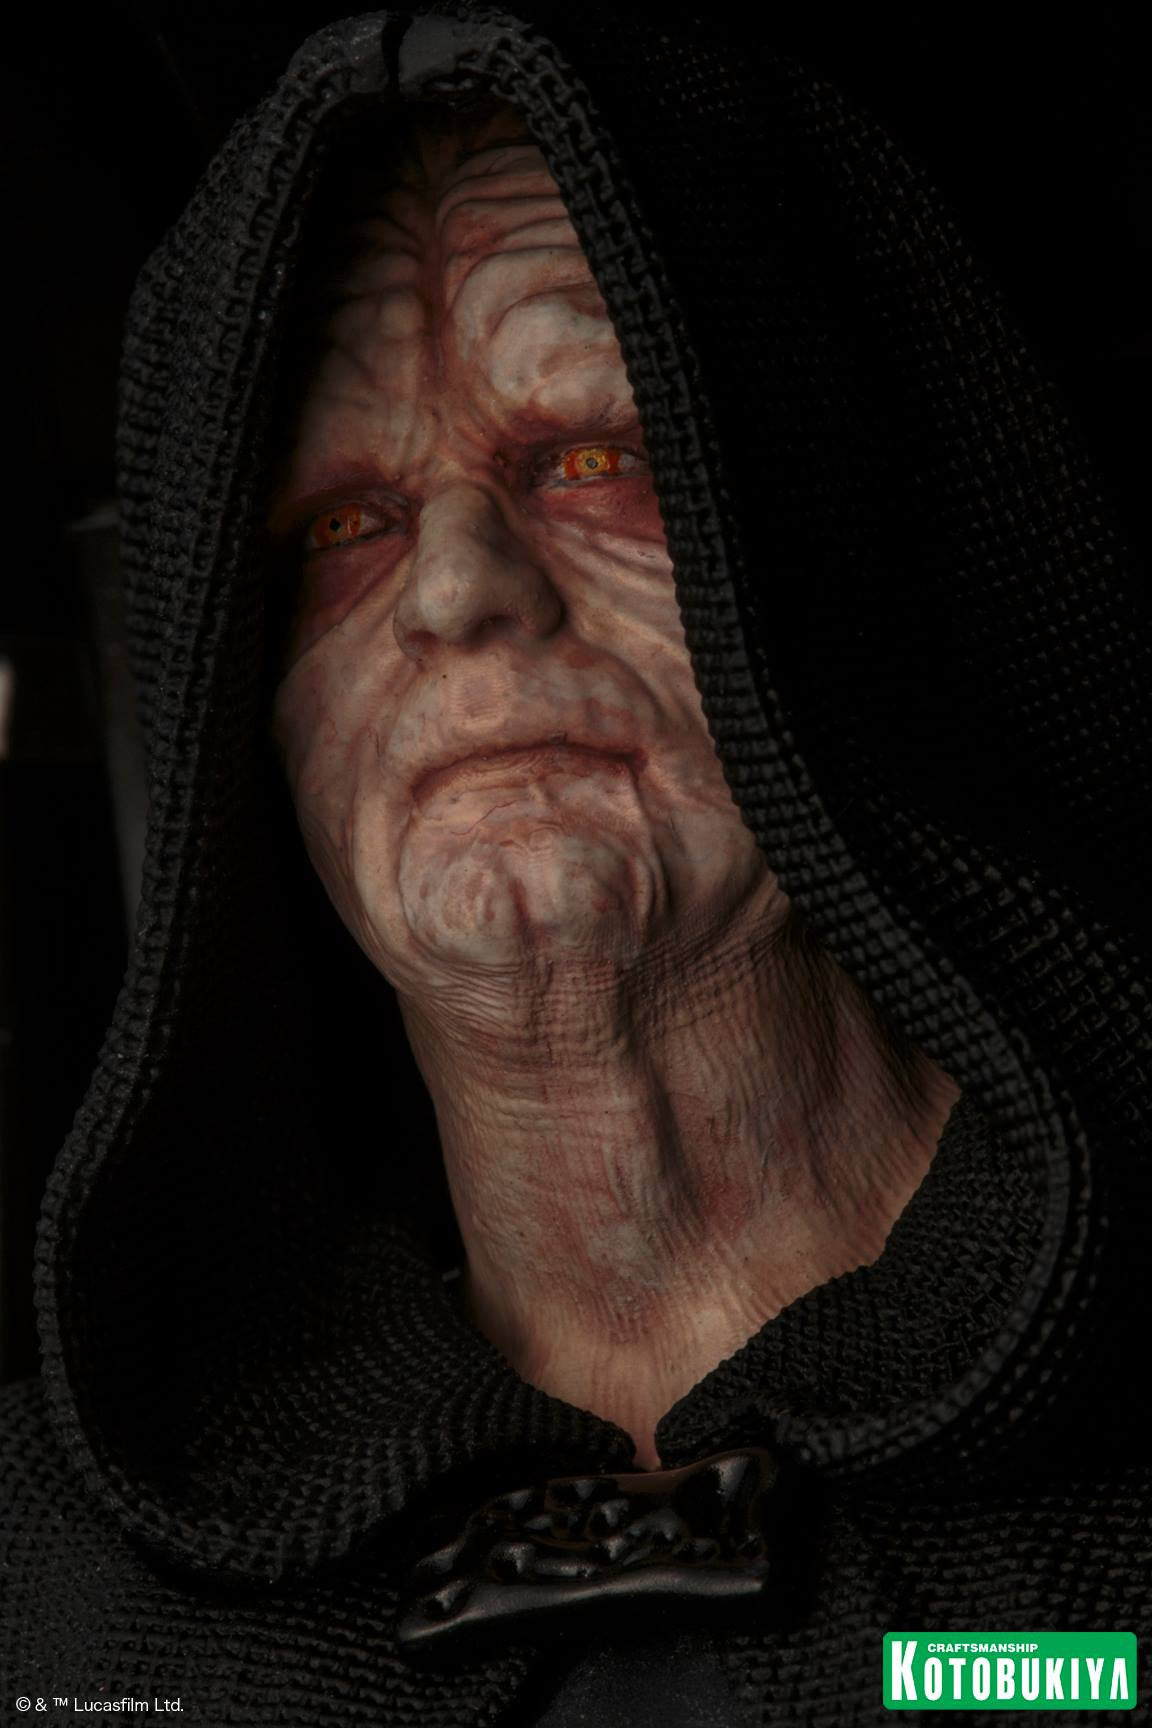 Kotobukiya - ARTFX+ - Star Wars: Return of the Jedi - Emperor Palpatine